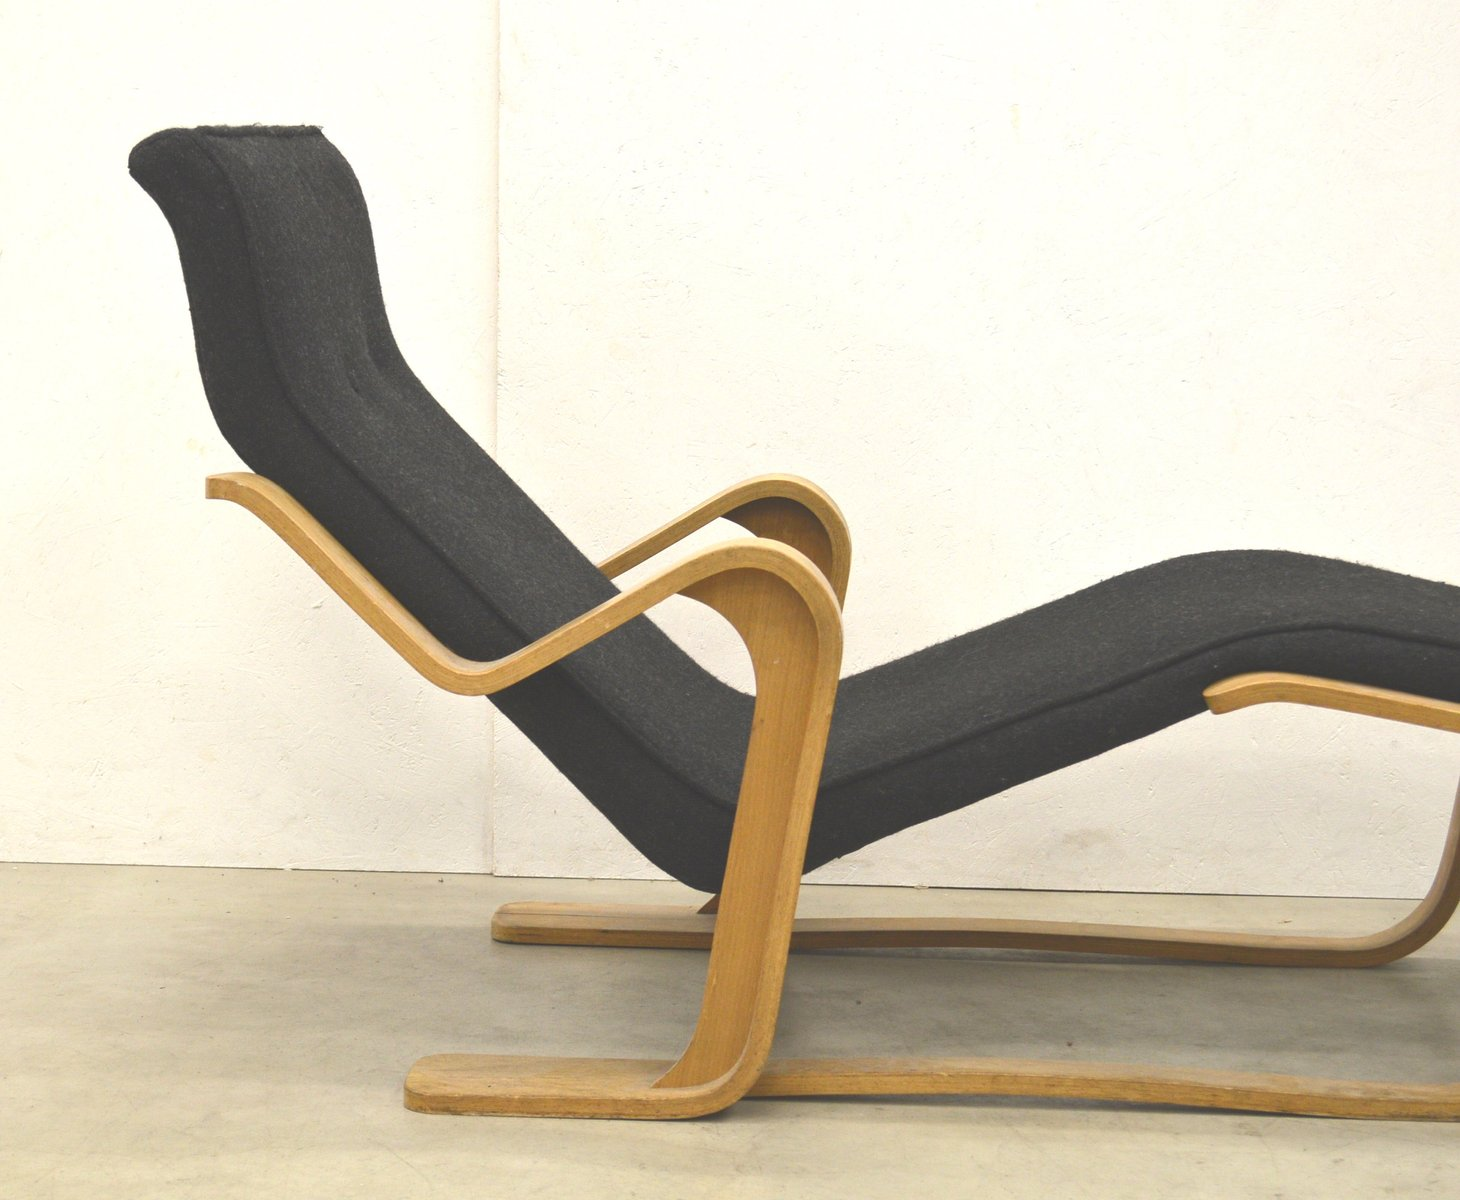 Birch chaise longue by marcel breuer for isokon 1950s for for Chaise longue 2 personnes